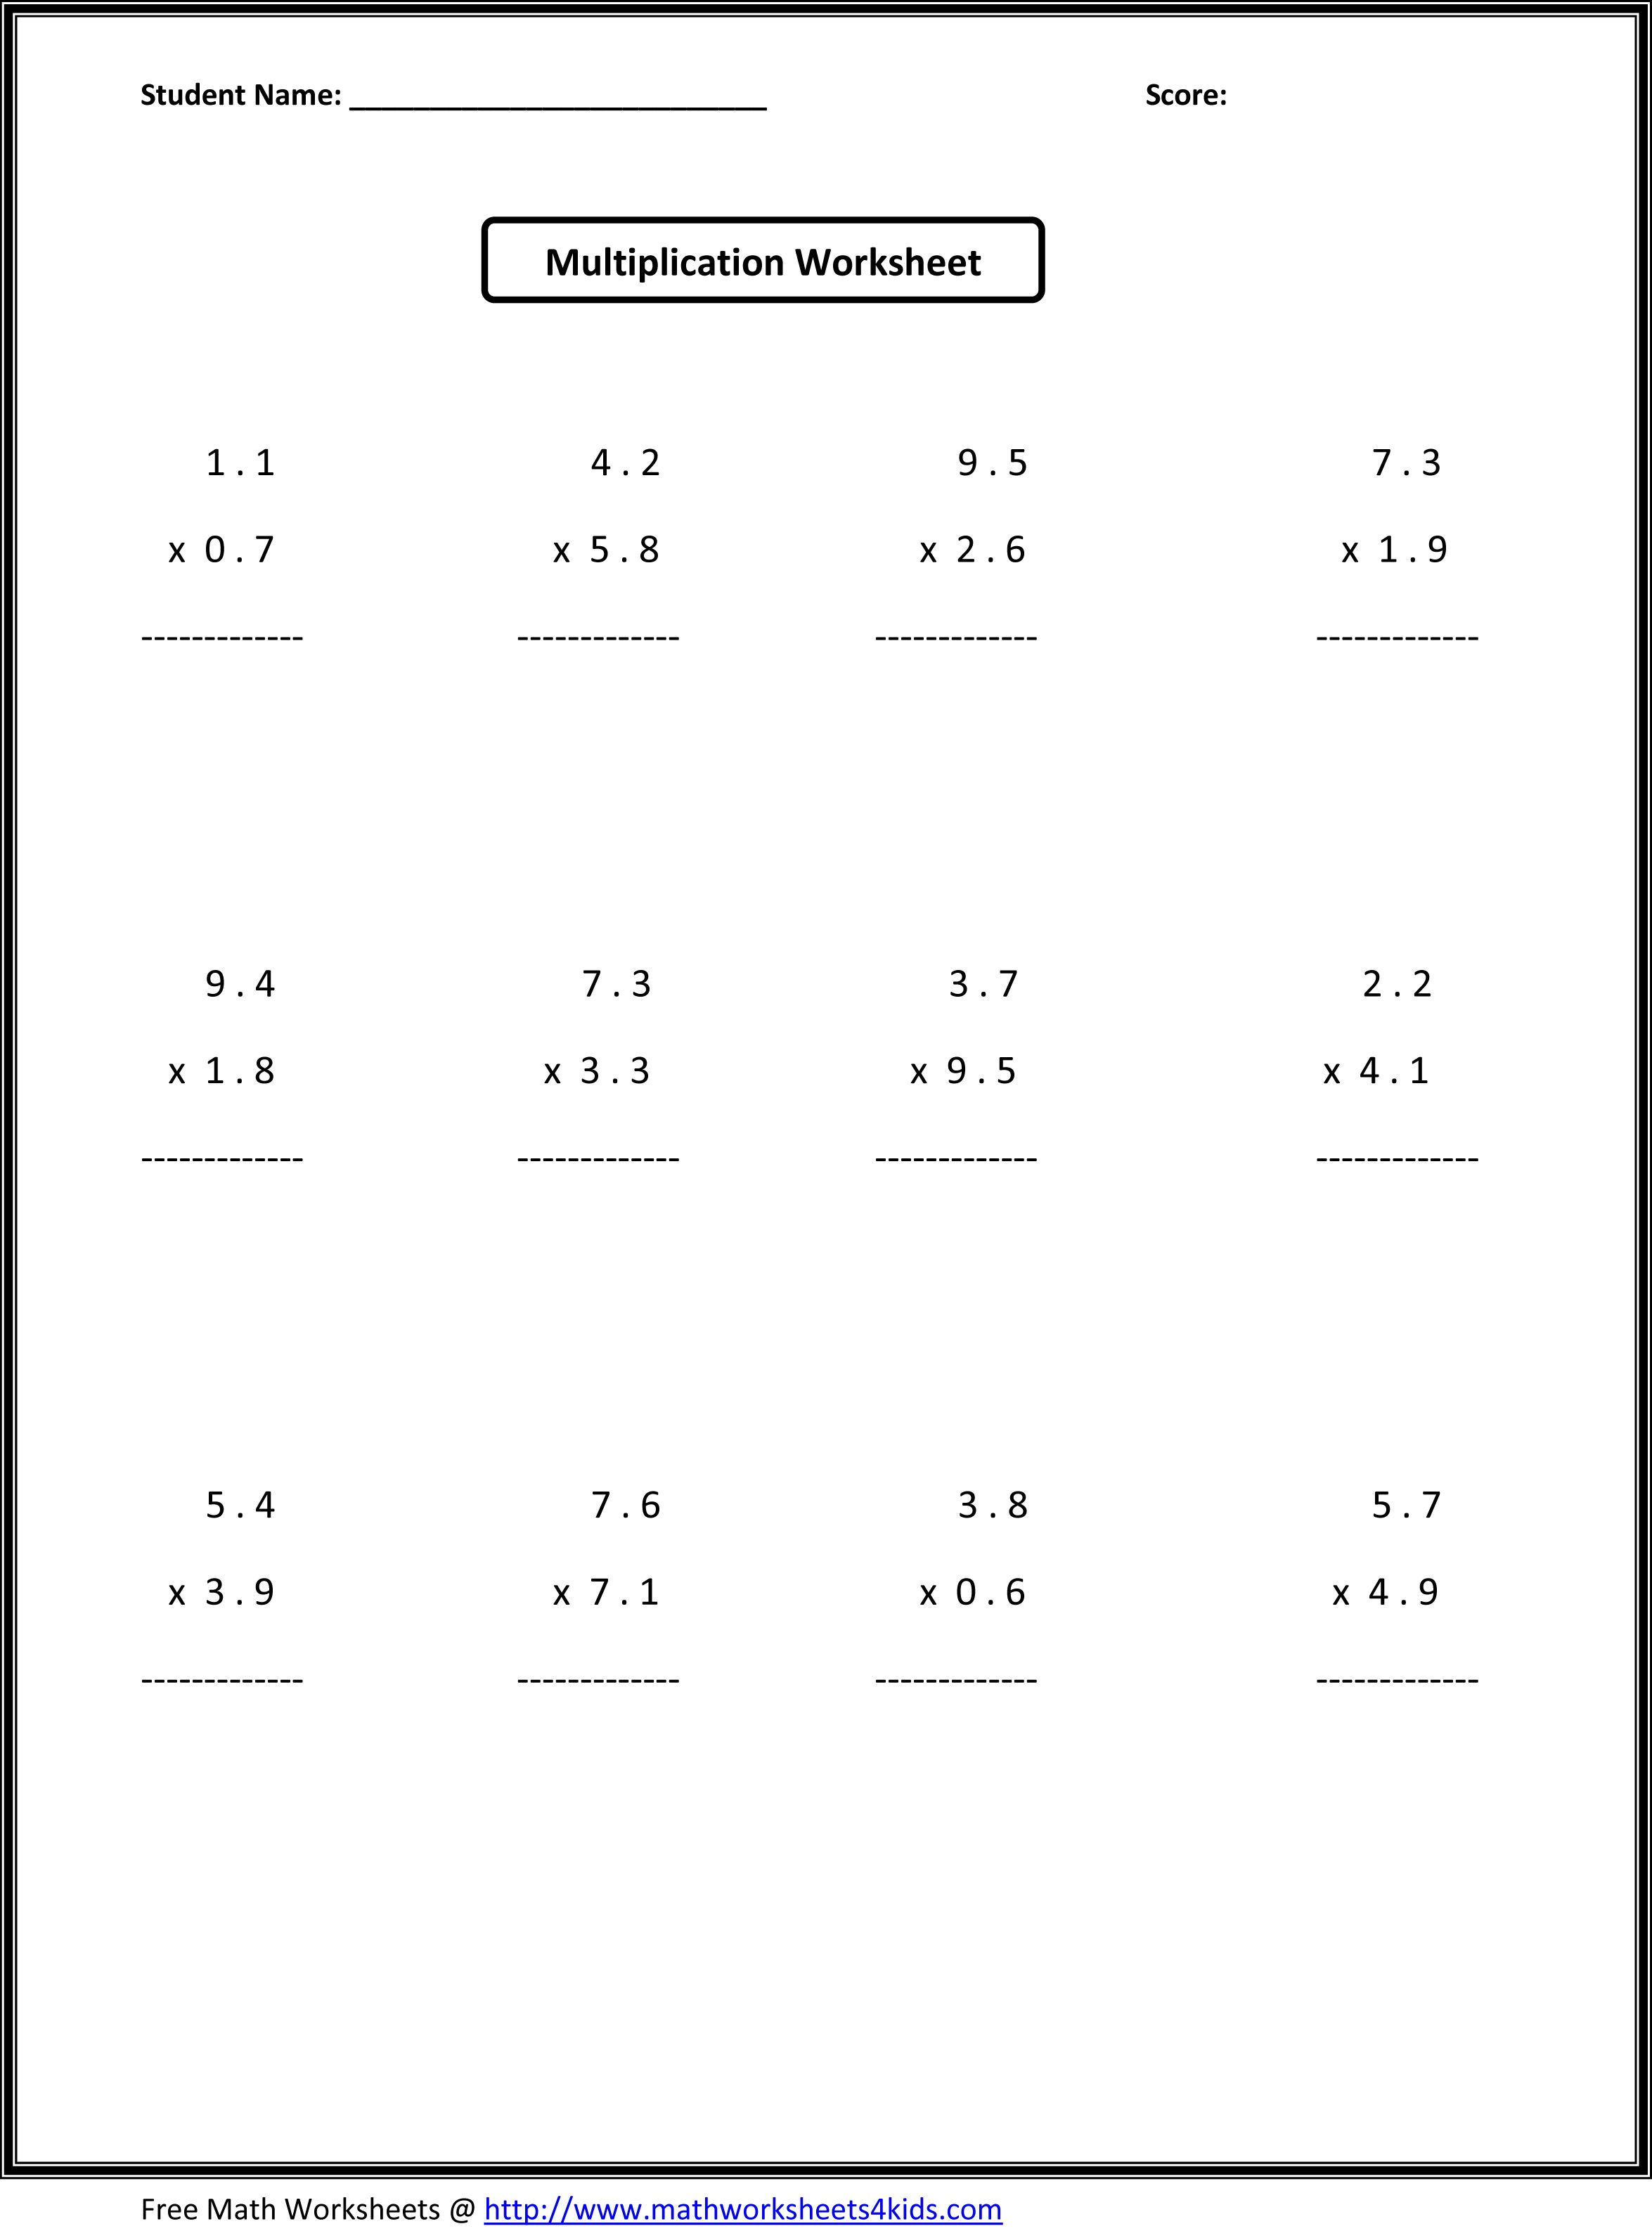 Worksheets Free 6th Grade Math Worksheets math decimals worksheets riddles 4th 5th 6th 7th grade sixth have ratio multiplying and dividing fractions algebraic expressions equations inequalities geom